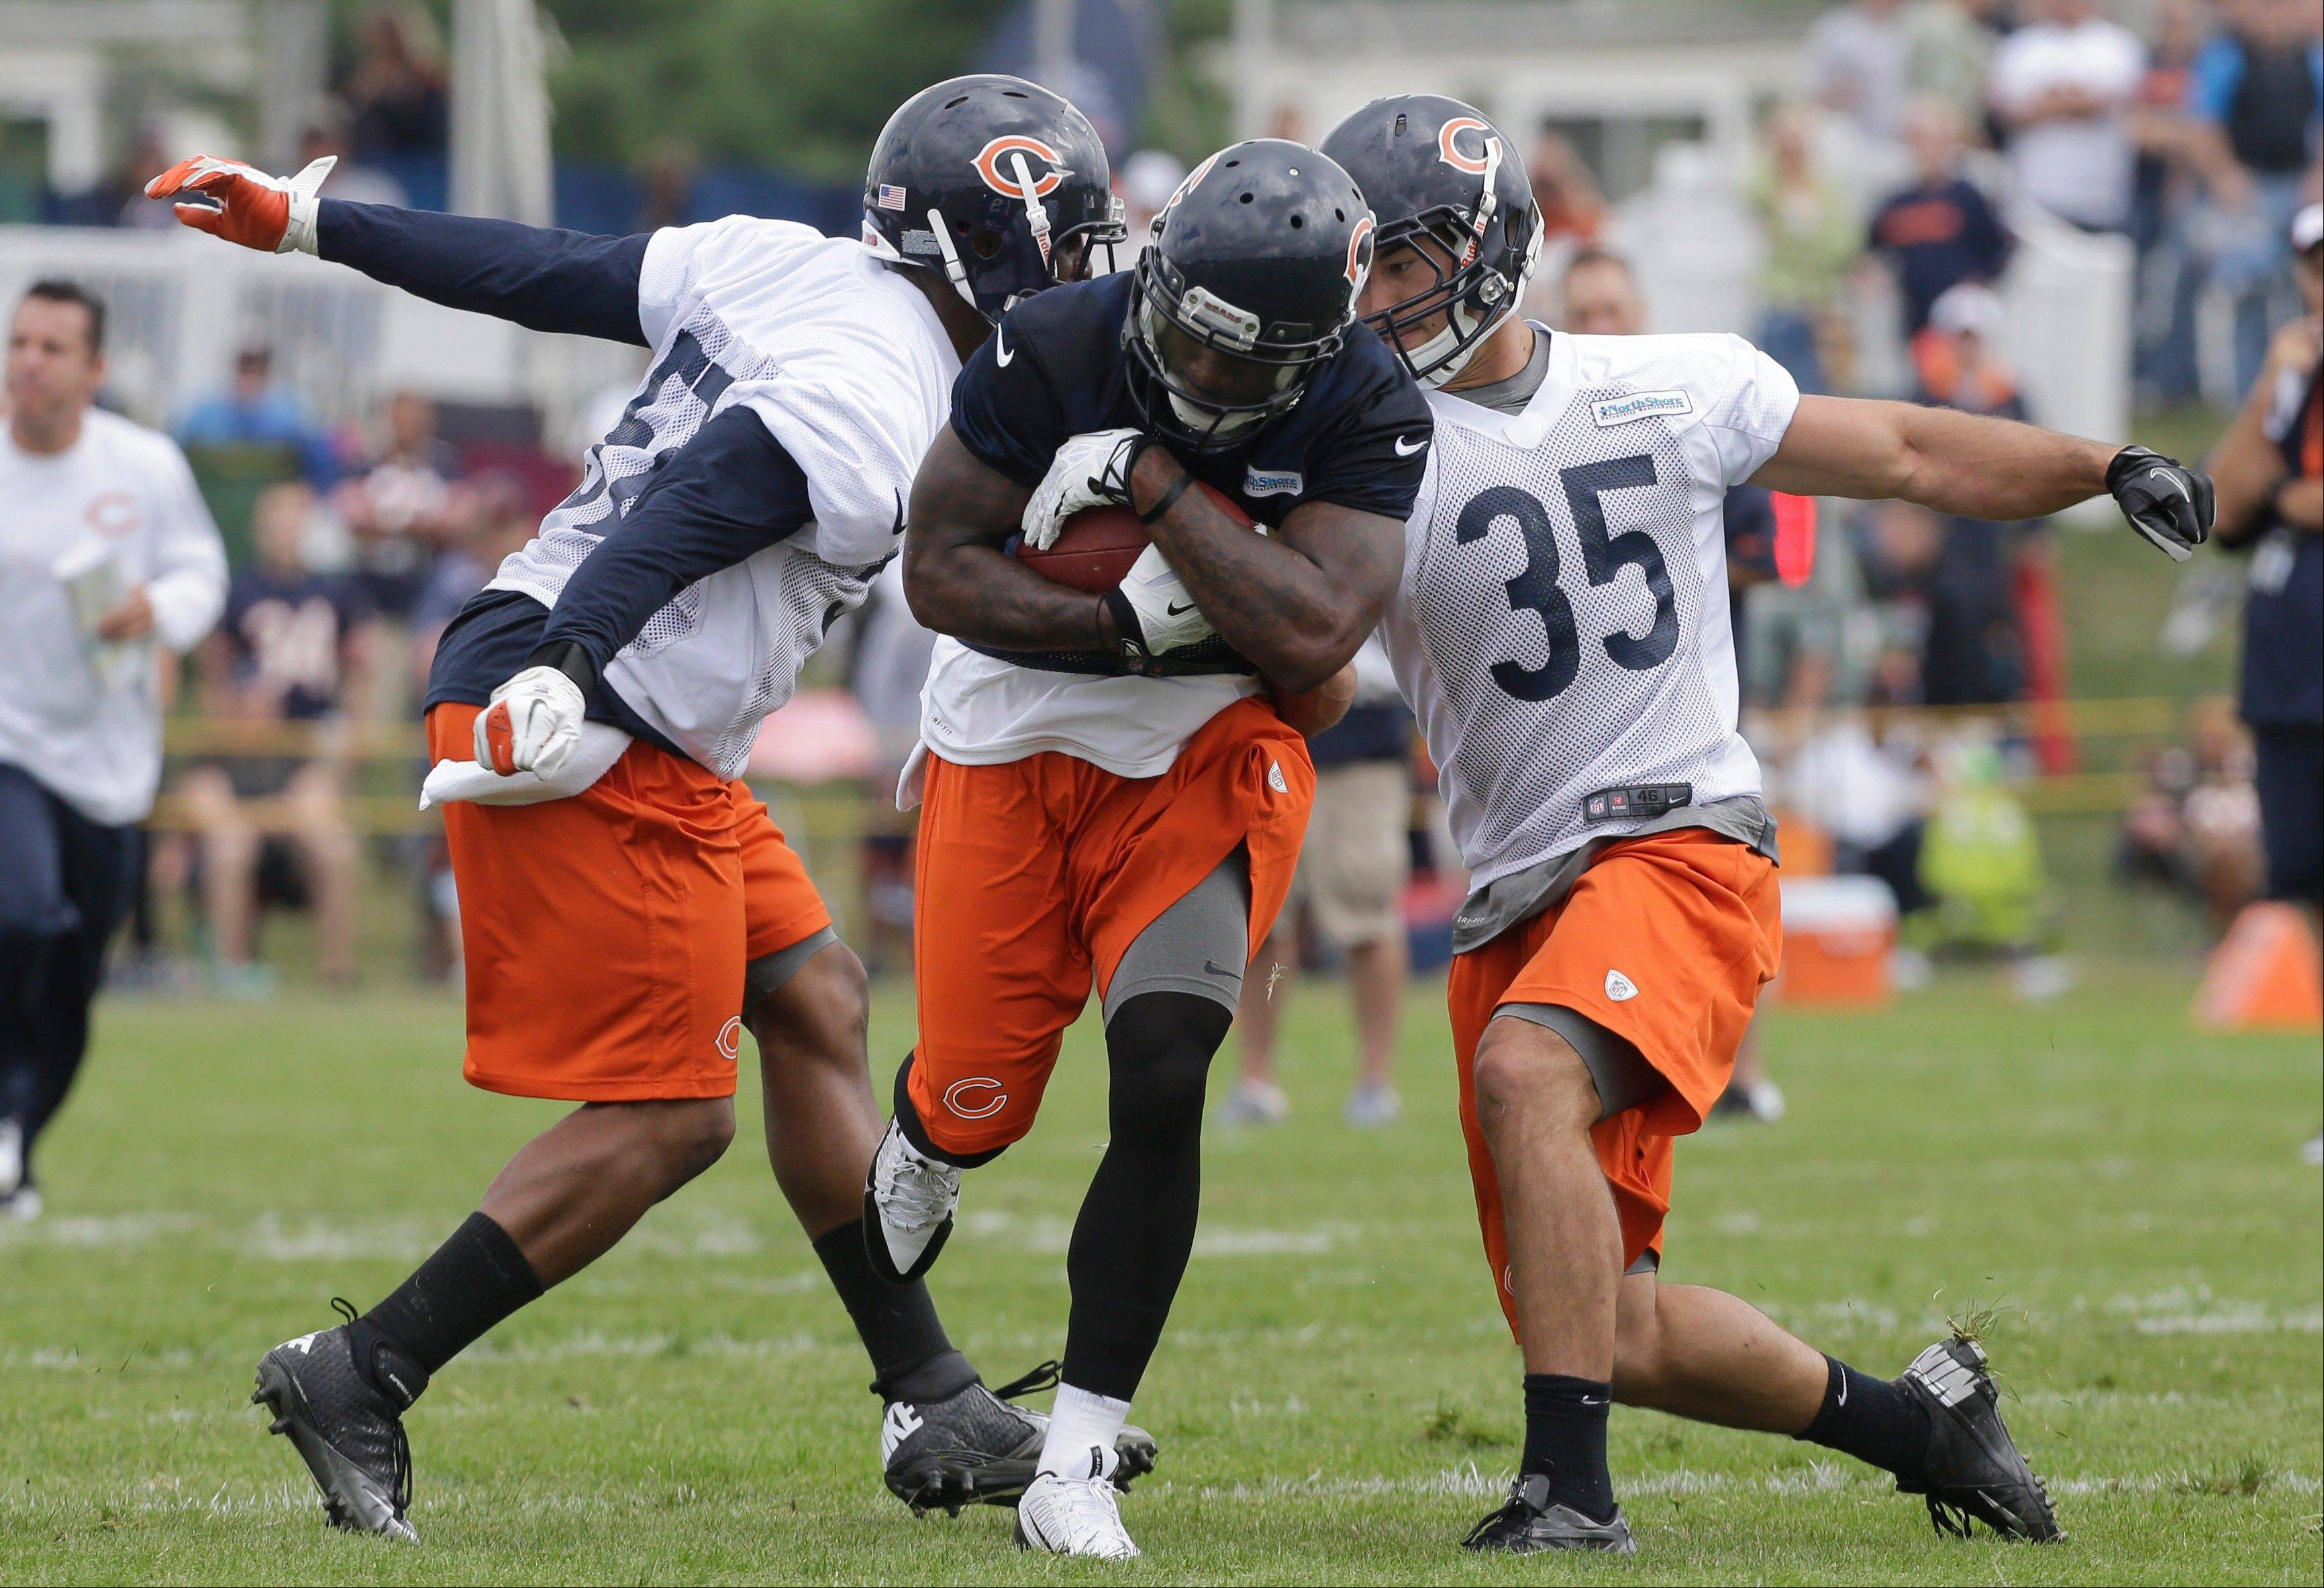 Injuries give Trestman chance to evaluate Bears' depth